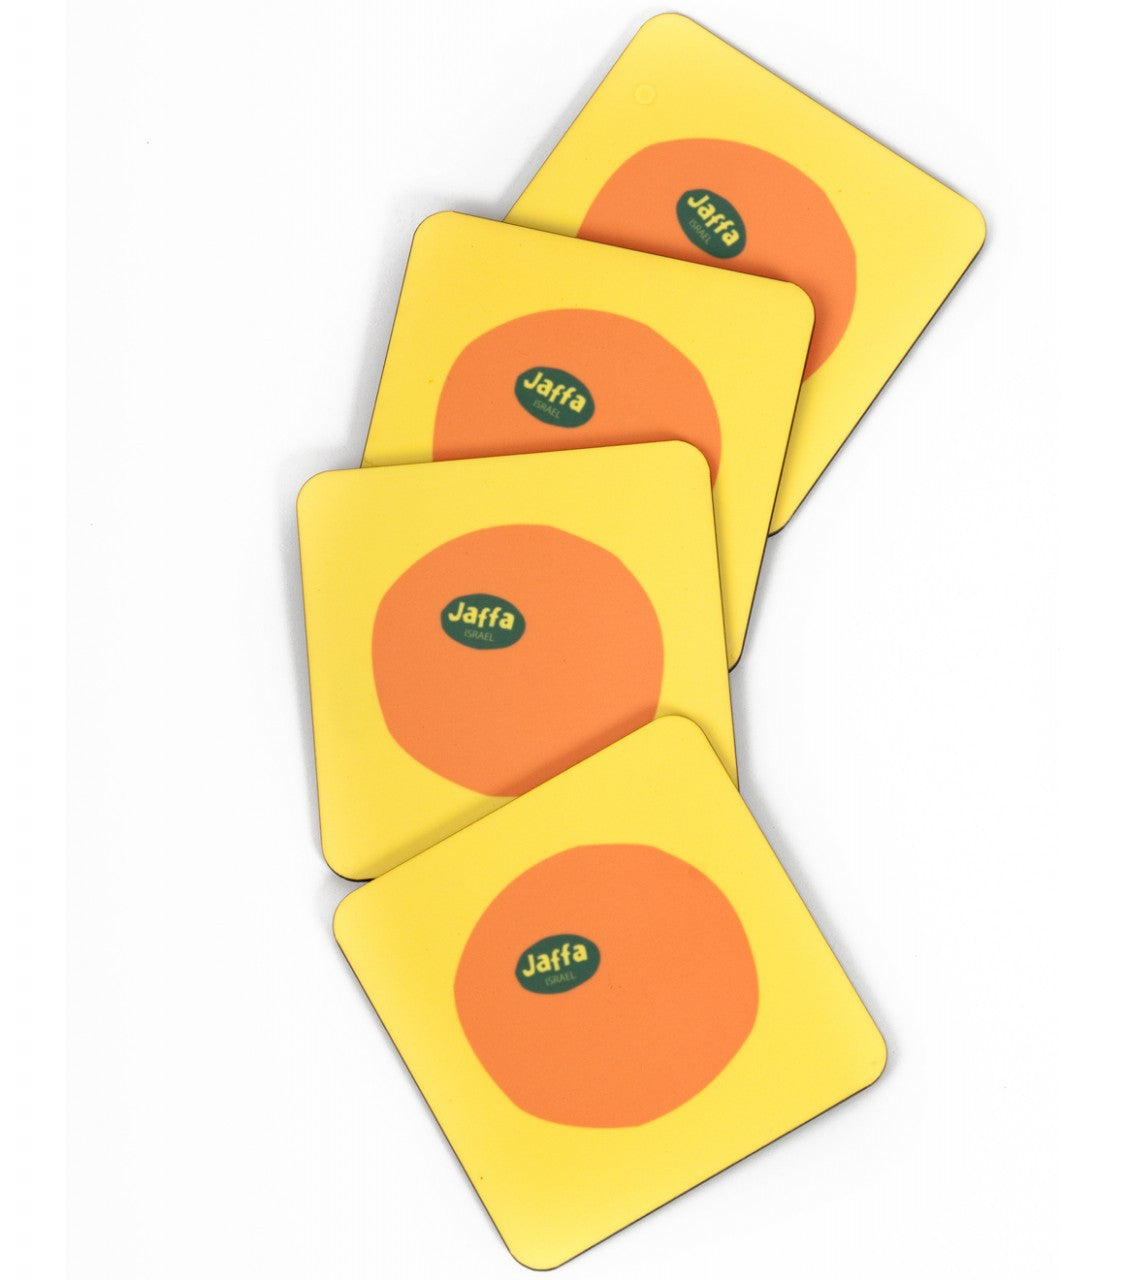 Barbara Shaw | Set of 4 'Jaffa' Coasters